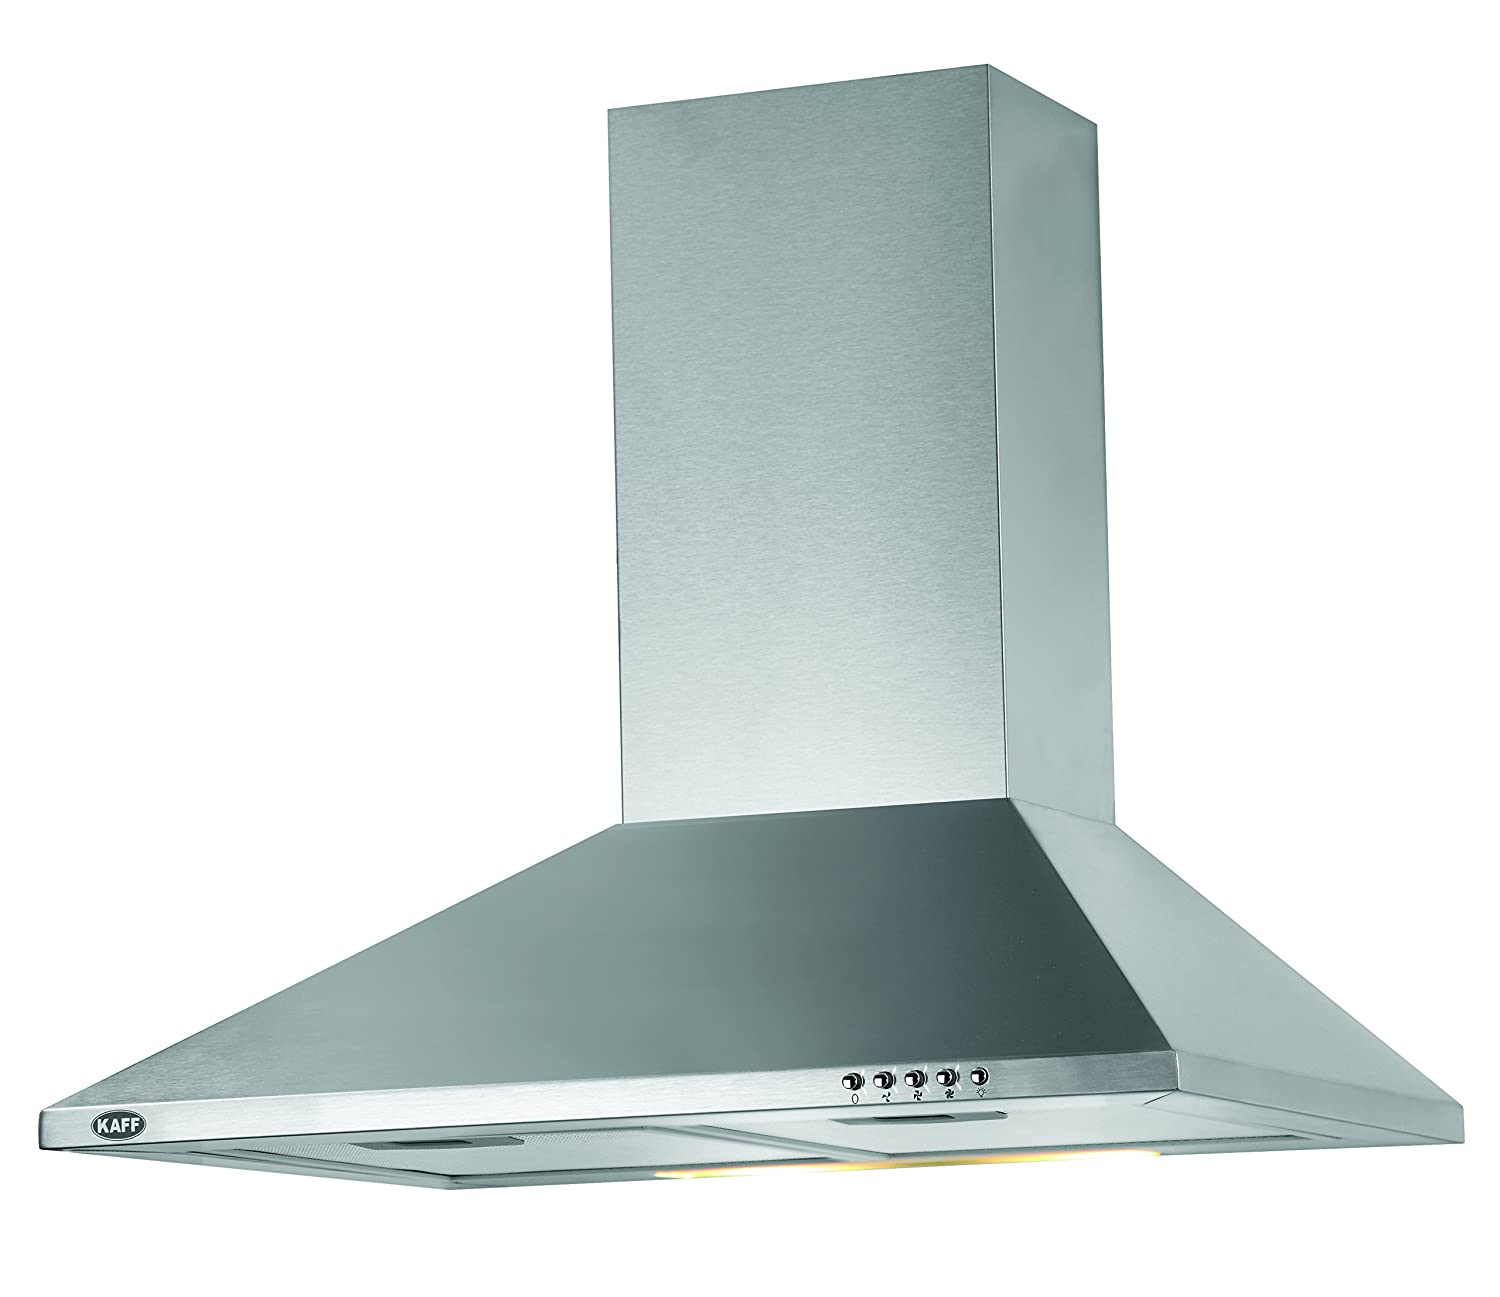 Kaff Kitchen Chimney 60 Cm 700 M3/H (Base Lx 60, Stainless Stee ...